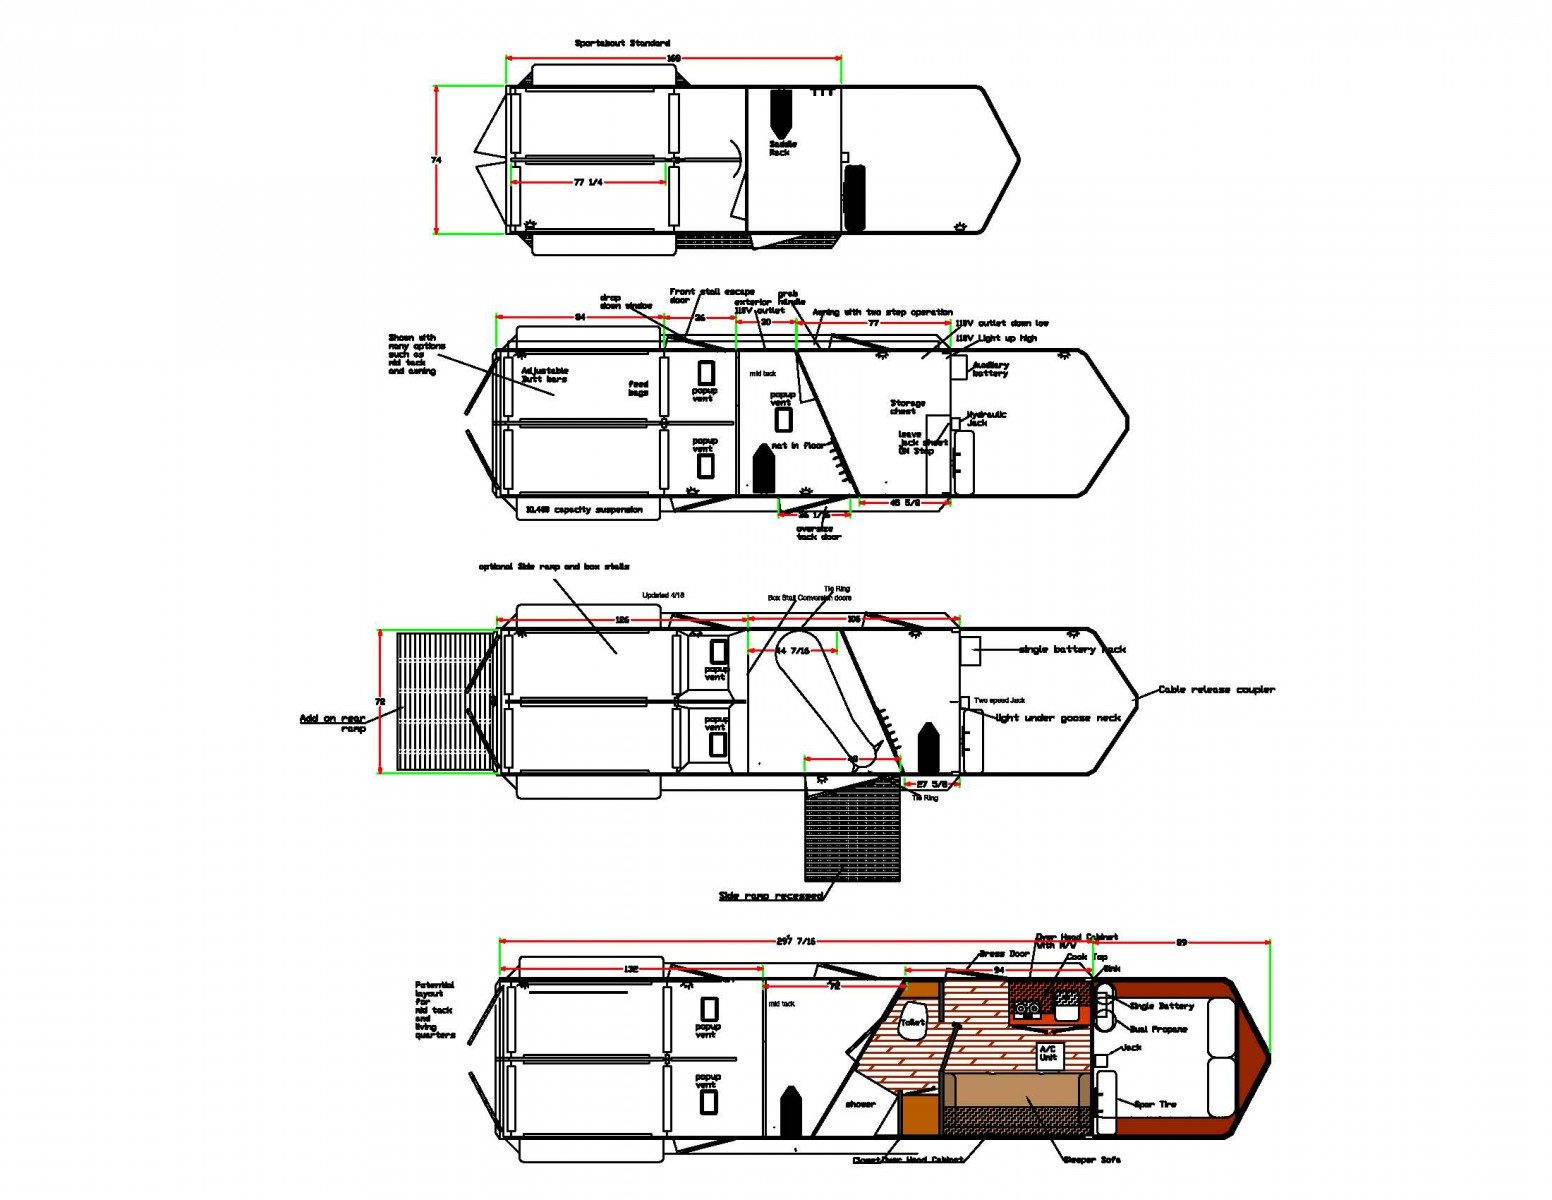 Horse trailer floor plans - Hollywood horror mp4 movies in hindi